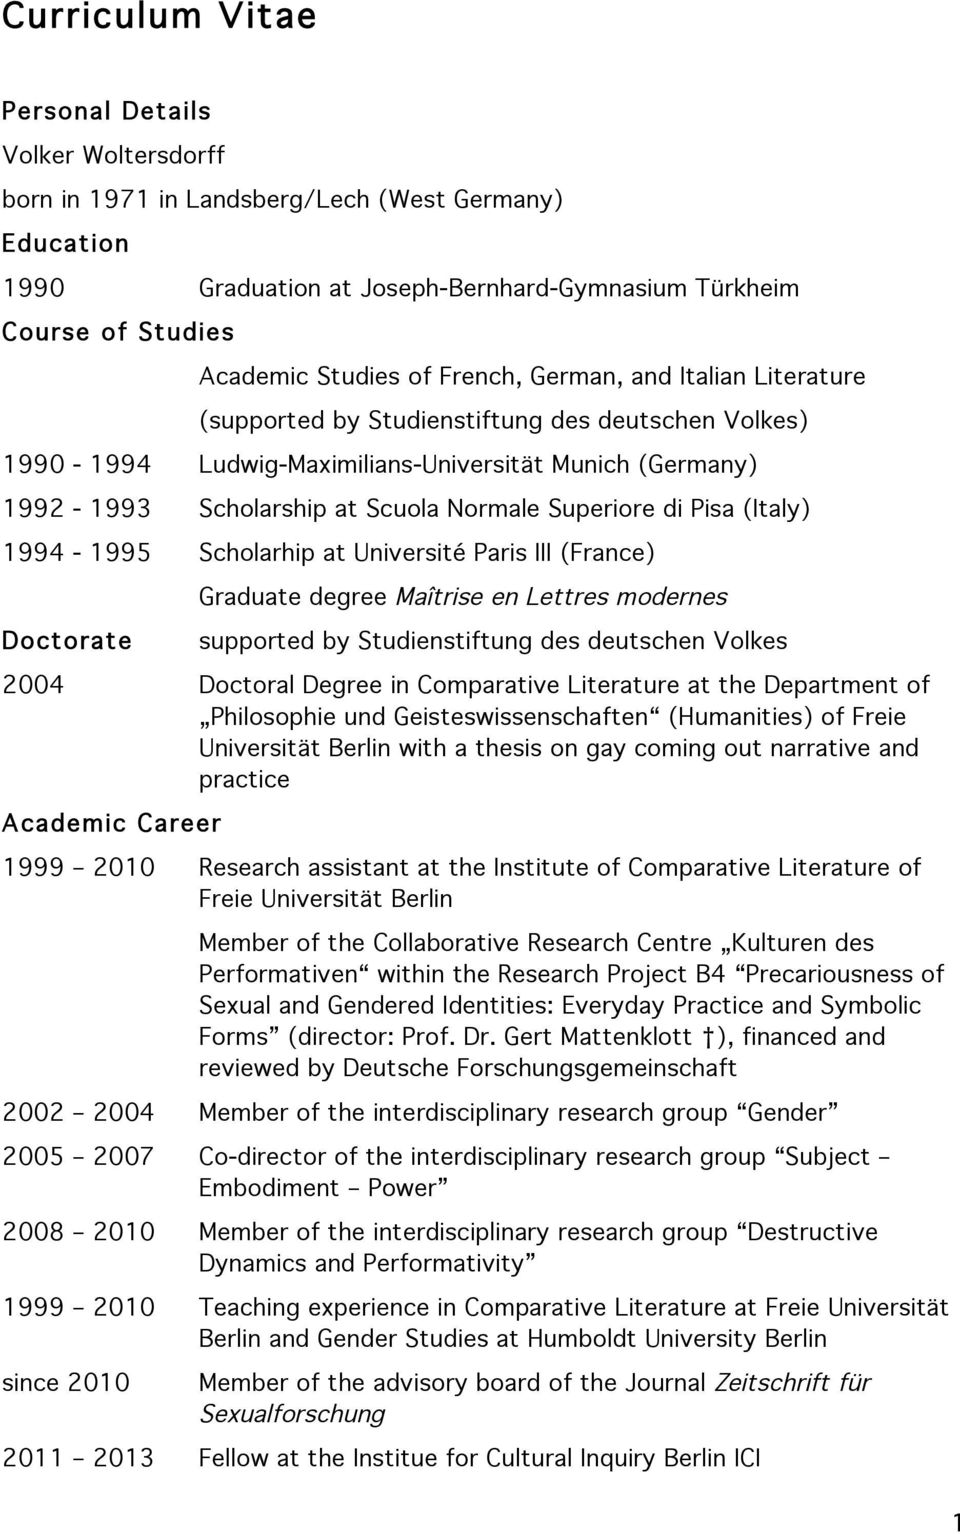 Superiore di Pisa (Italy) 1994-1995 Scholarhip at Université Paris III (France) Doctorate Graduate degree Maîtrise en Lettres modernes supported by Studienstiftung des deutschen Volkes 2004 Doctoral